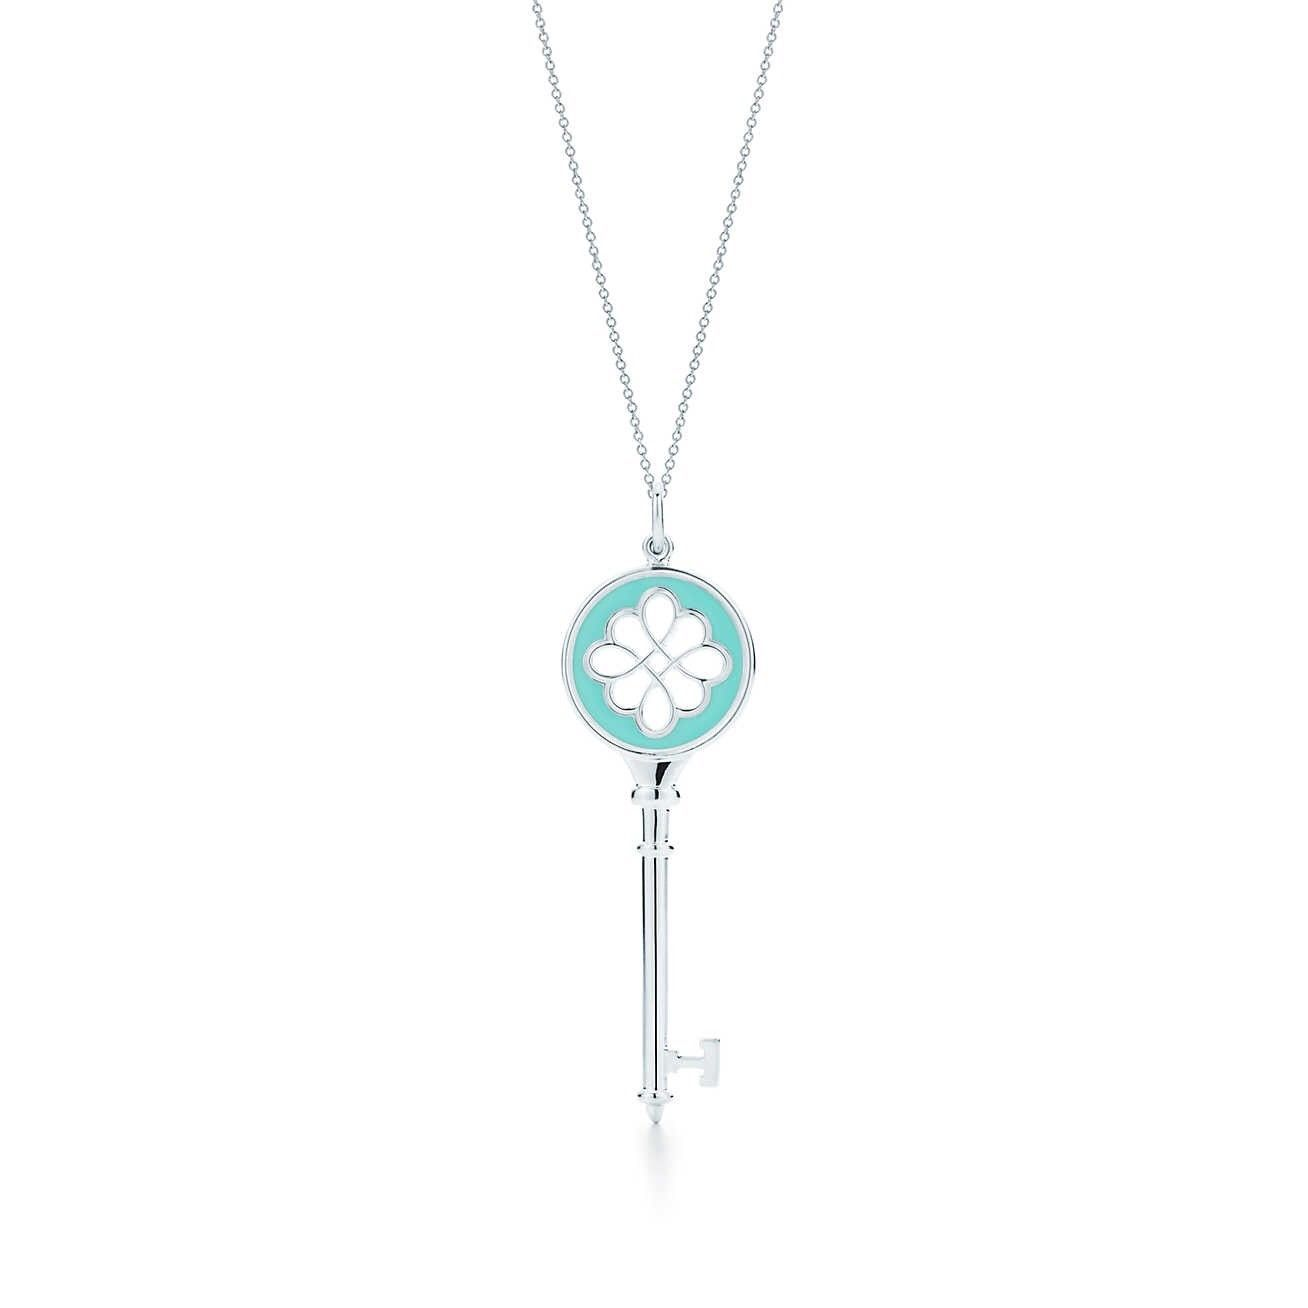 Tiffany Co Necklace Collection Knot Key Tiffany Blue Tiffany Key Sterling Silver Necklace Pendants Tiffany Necklace